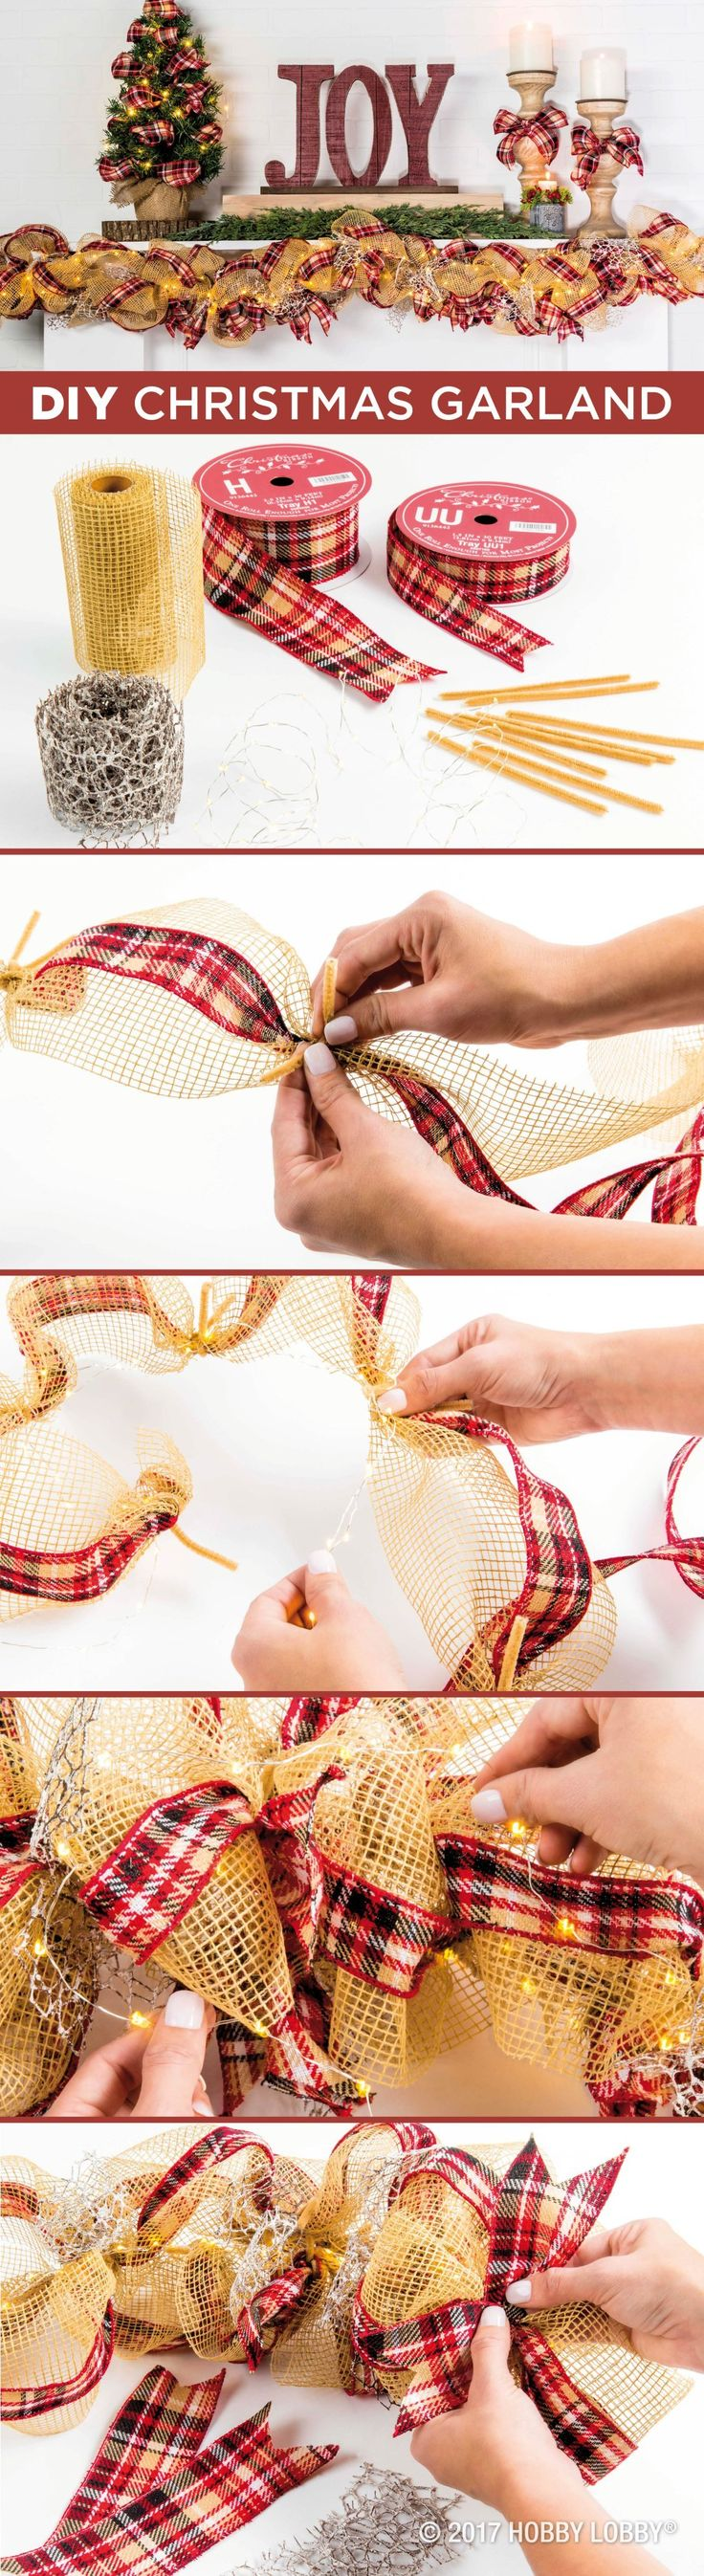 Add a little handmade goodness to your holidays with a DIY Christmas garland.